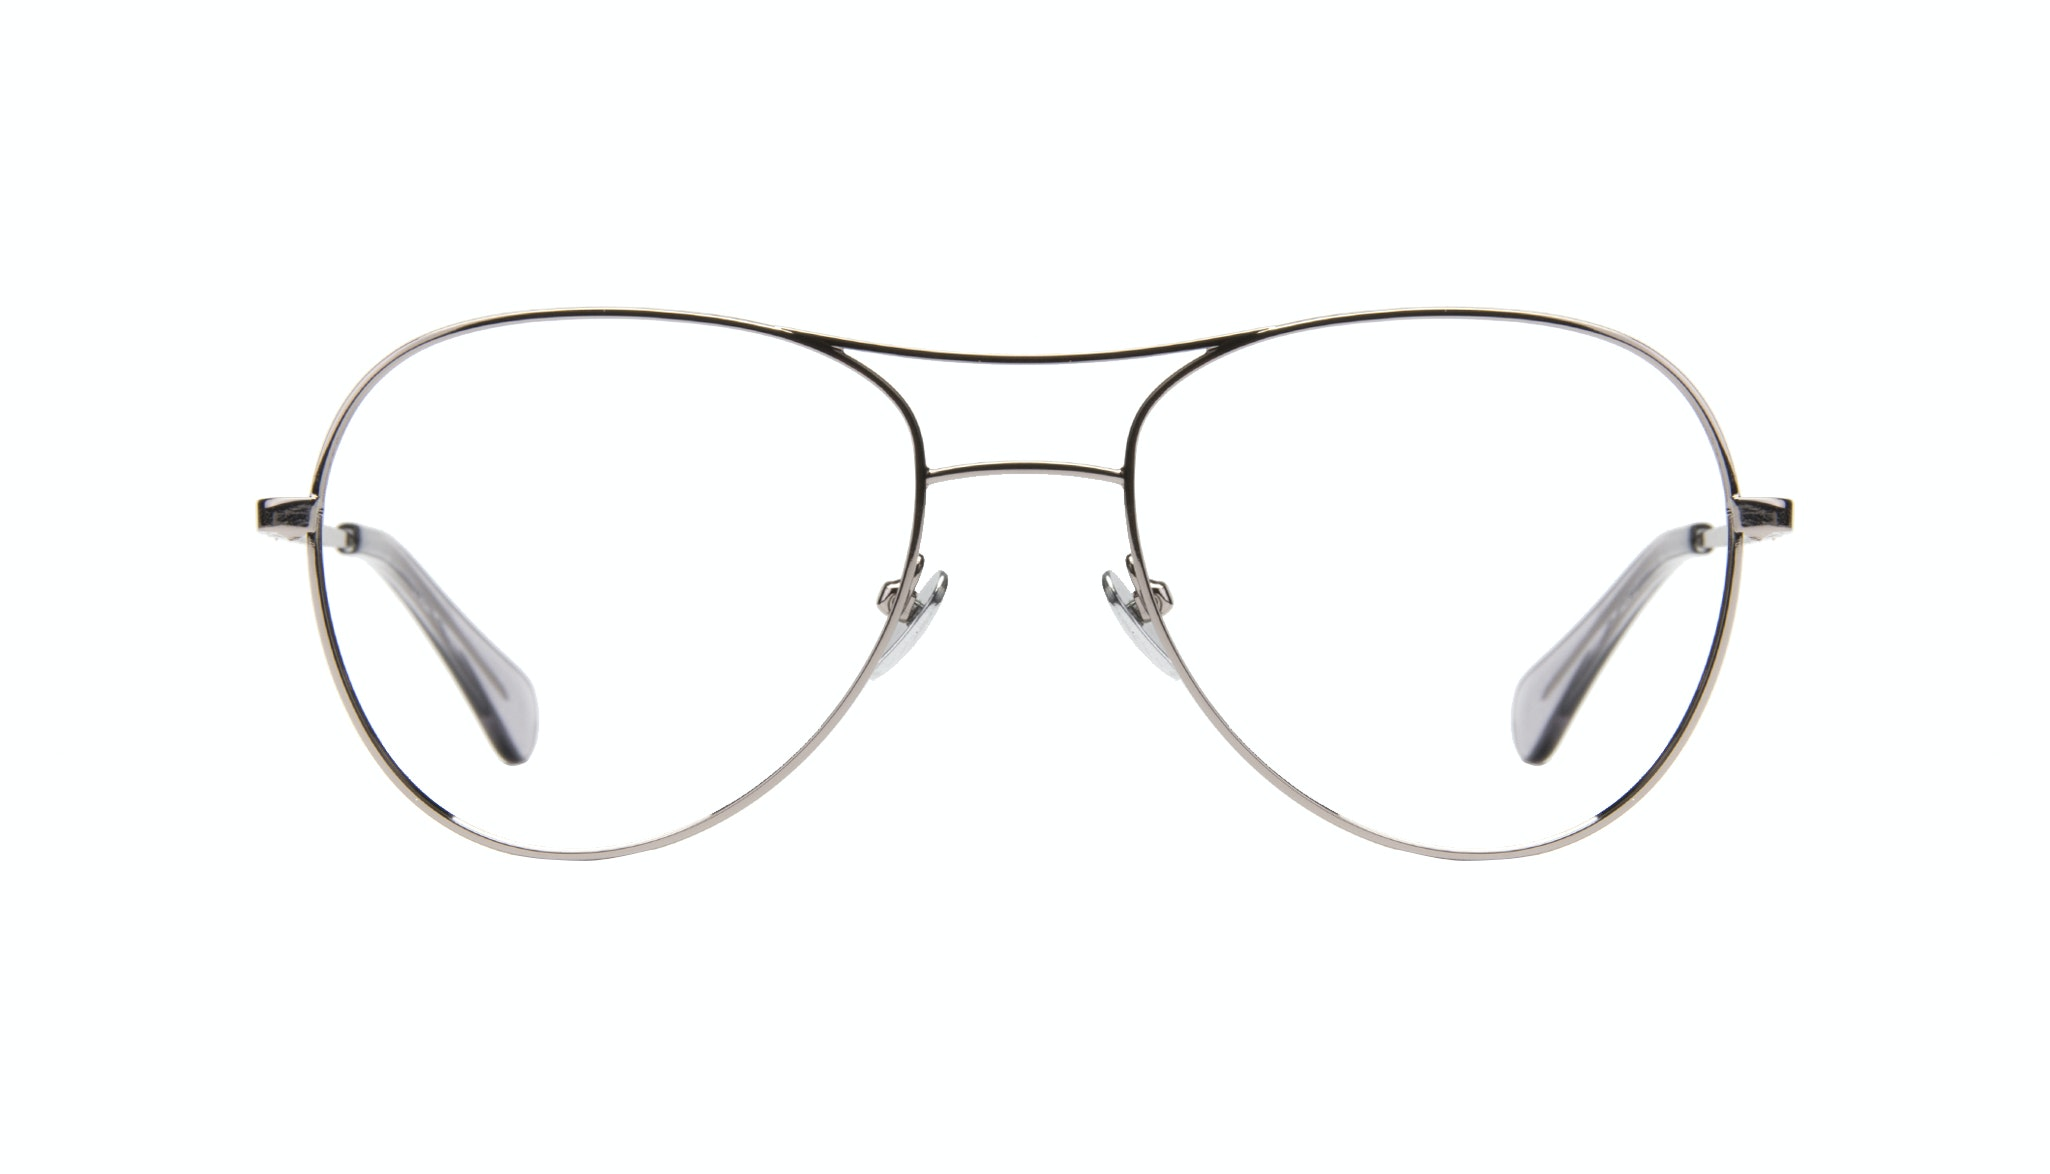 Affordable Fashion Glasses Aviator Eyeglasses Women Want Silver